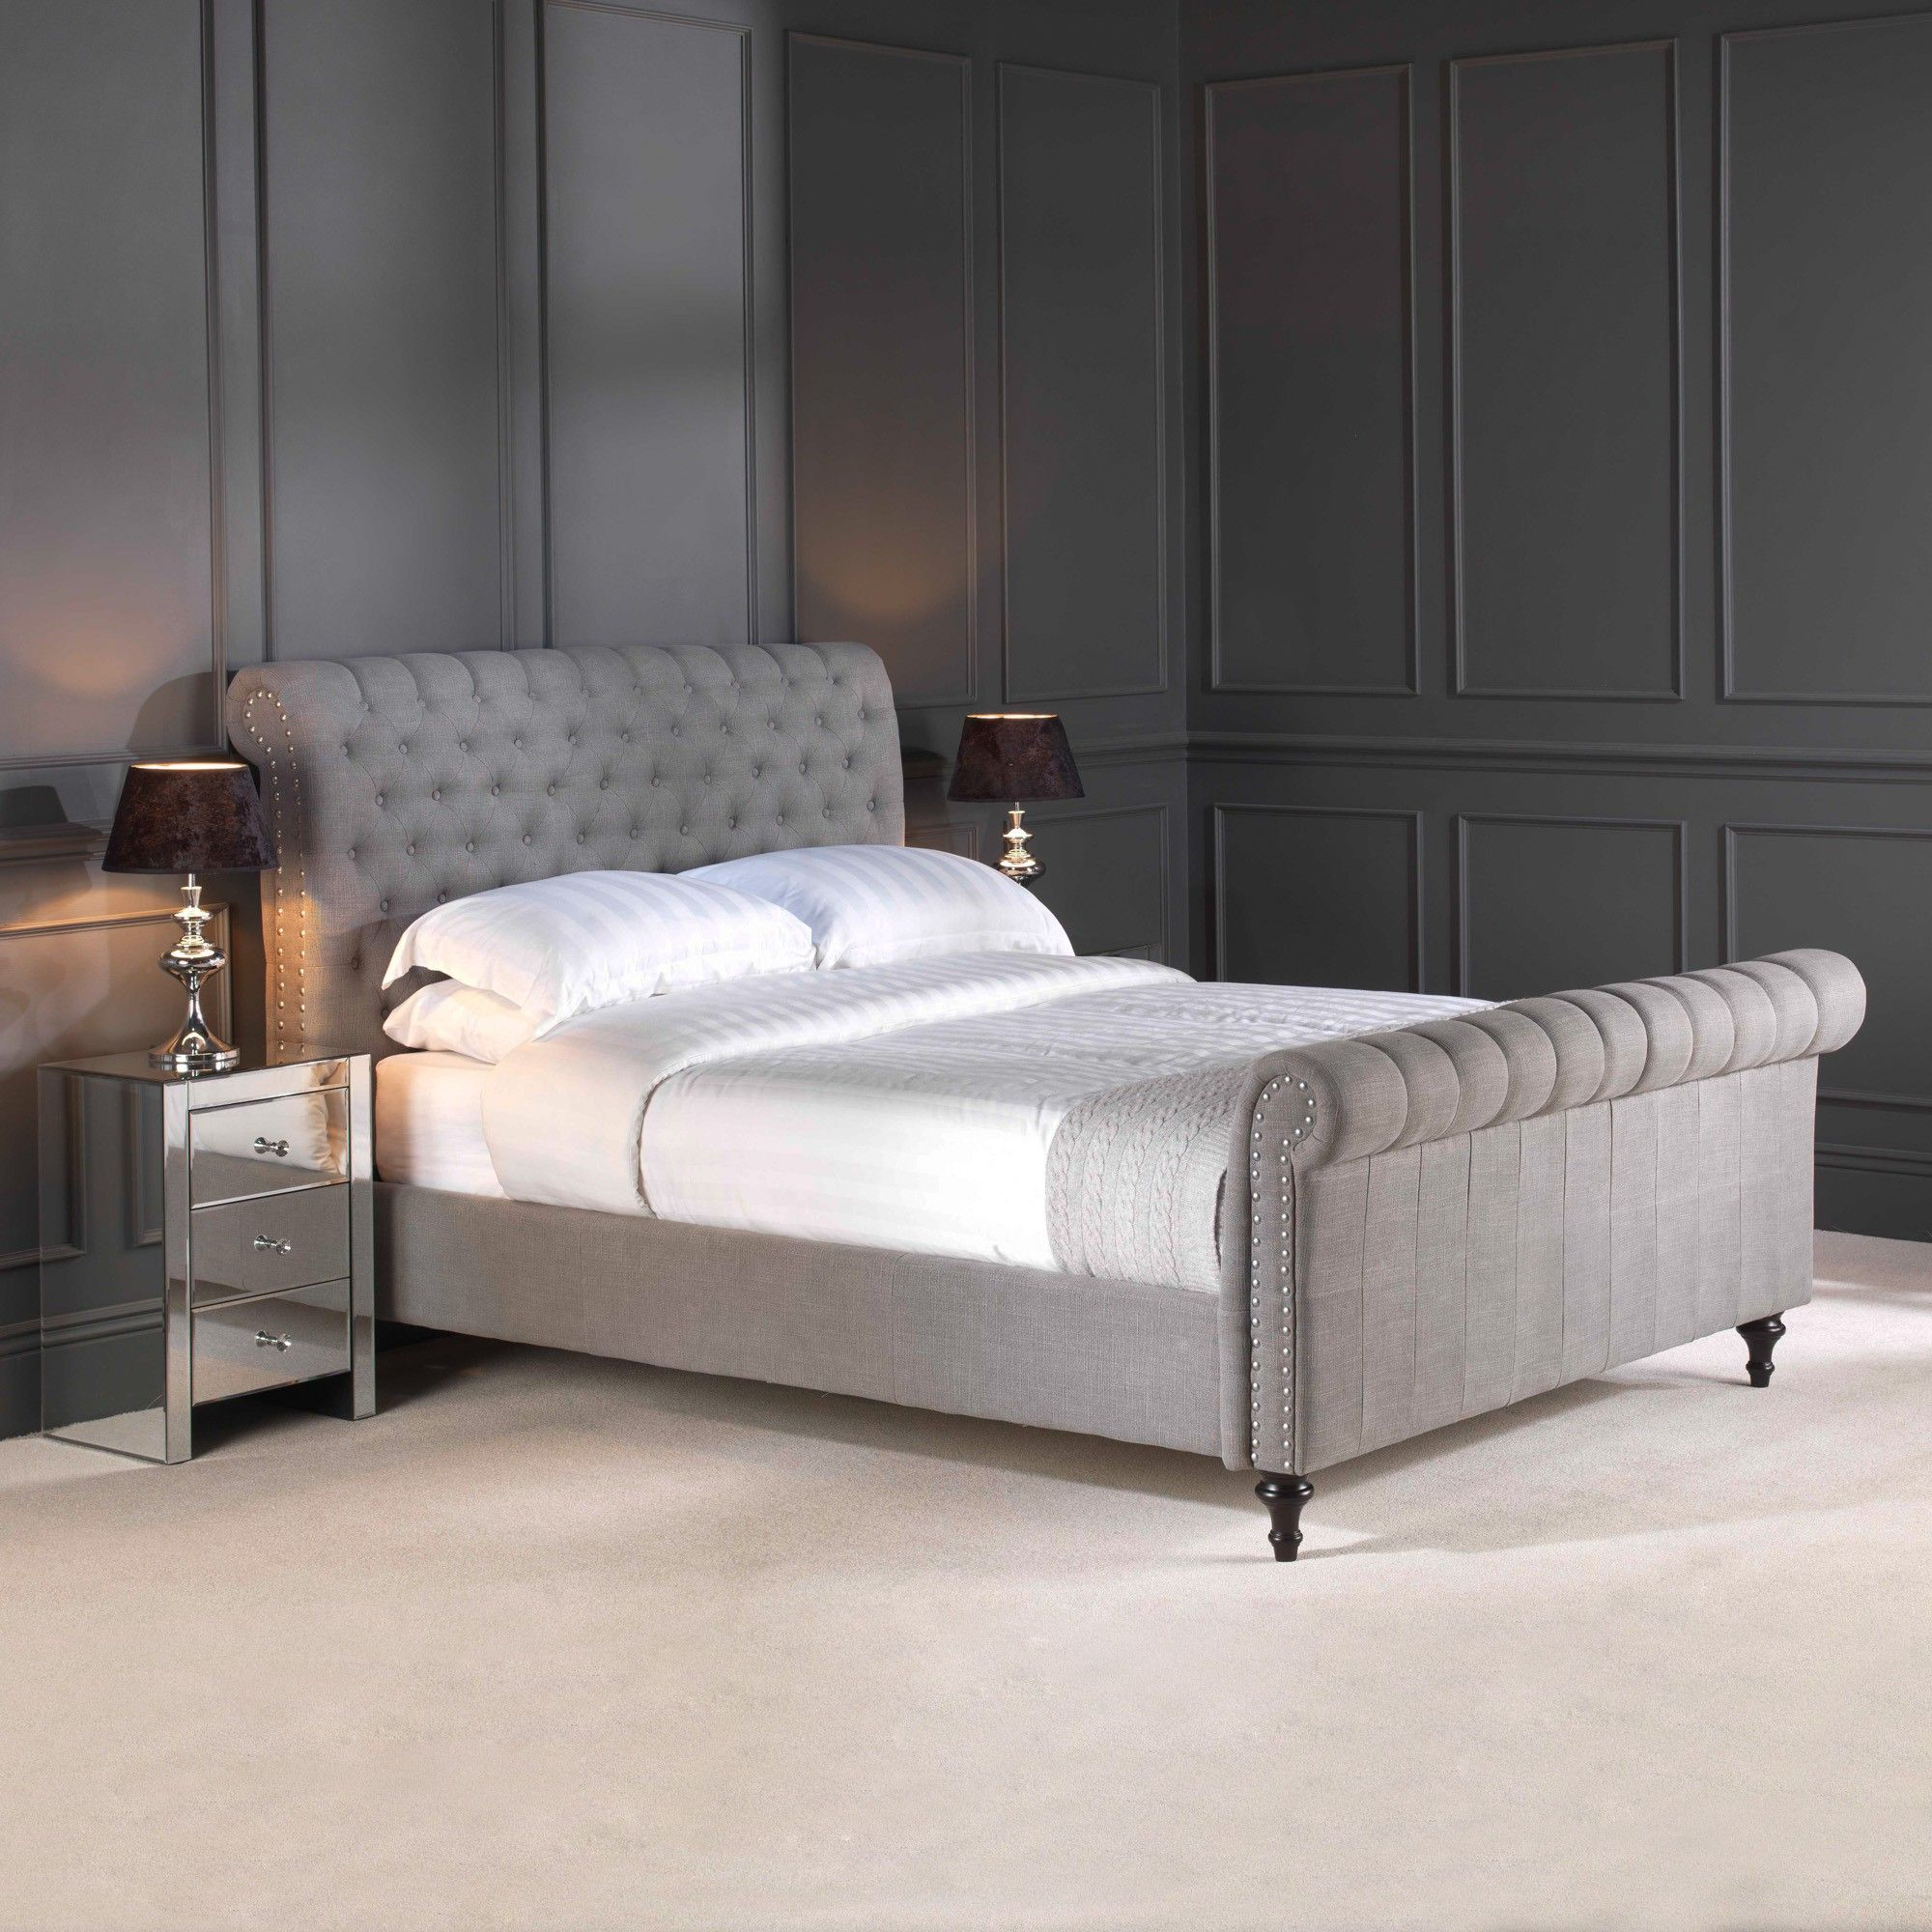 GO1142S-5 King Size Steel Premium Linen Upholstered Chesterfield Bed ...